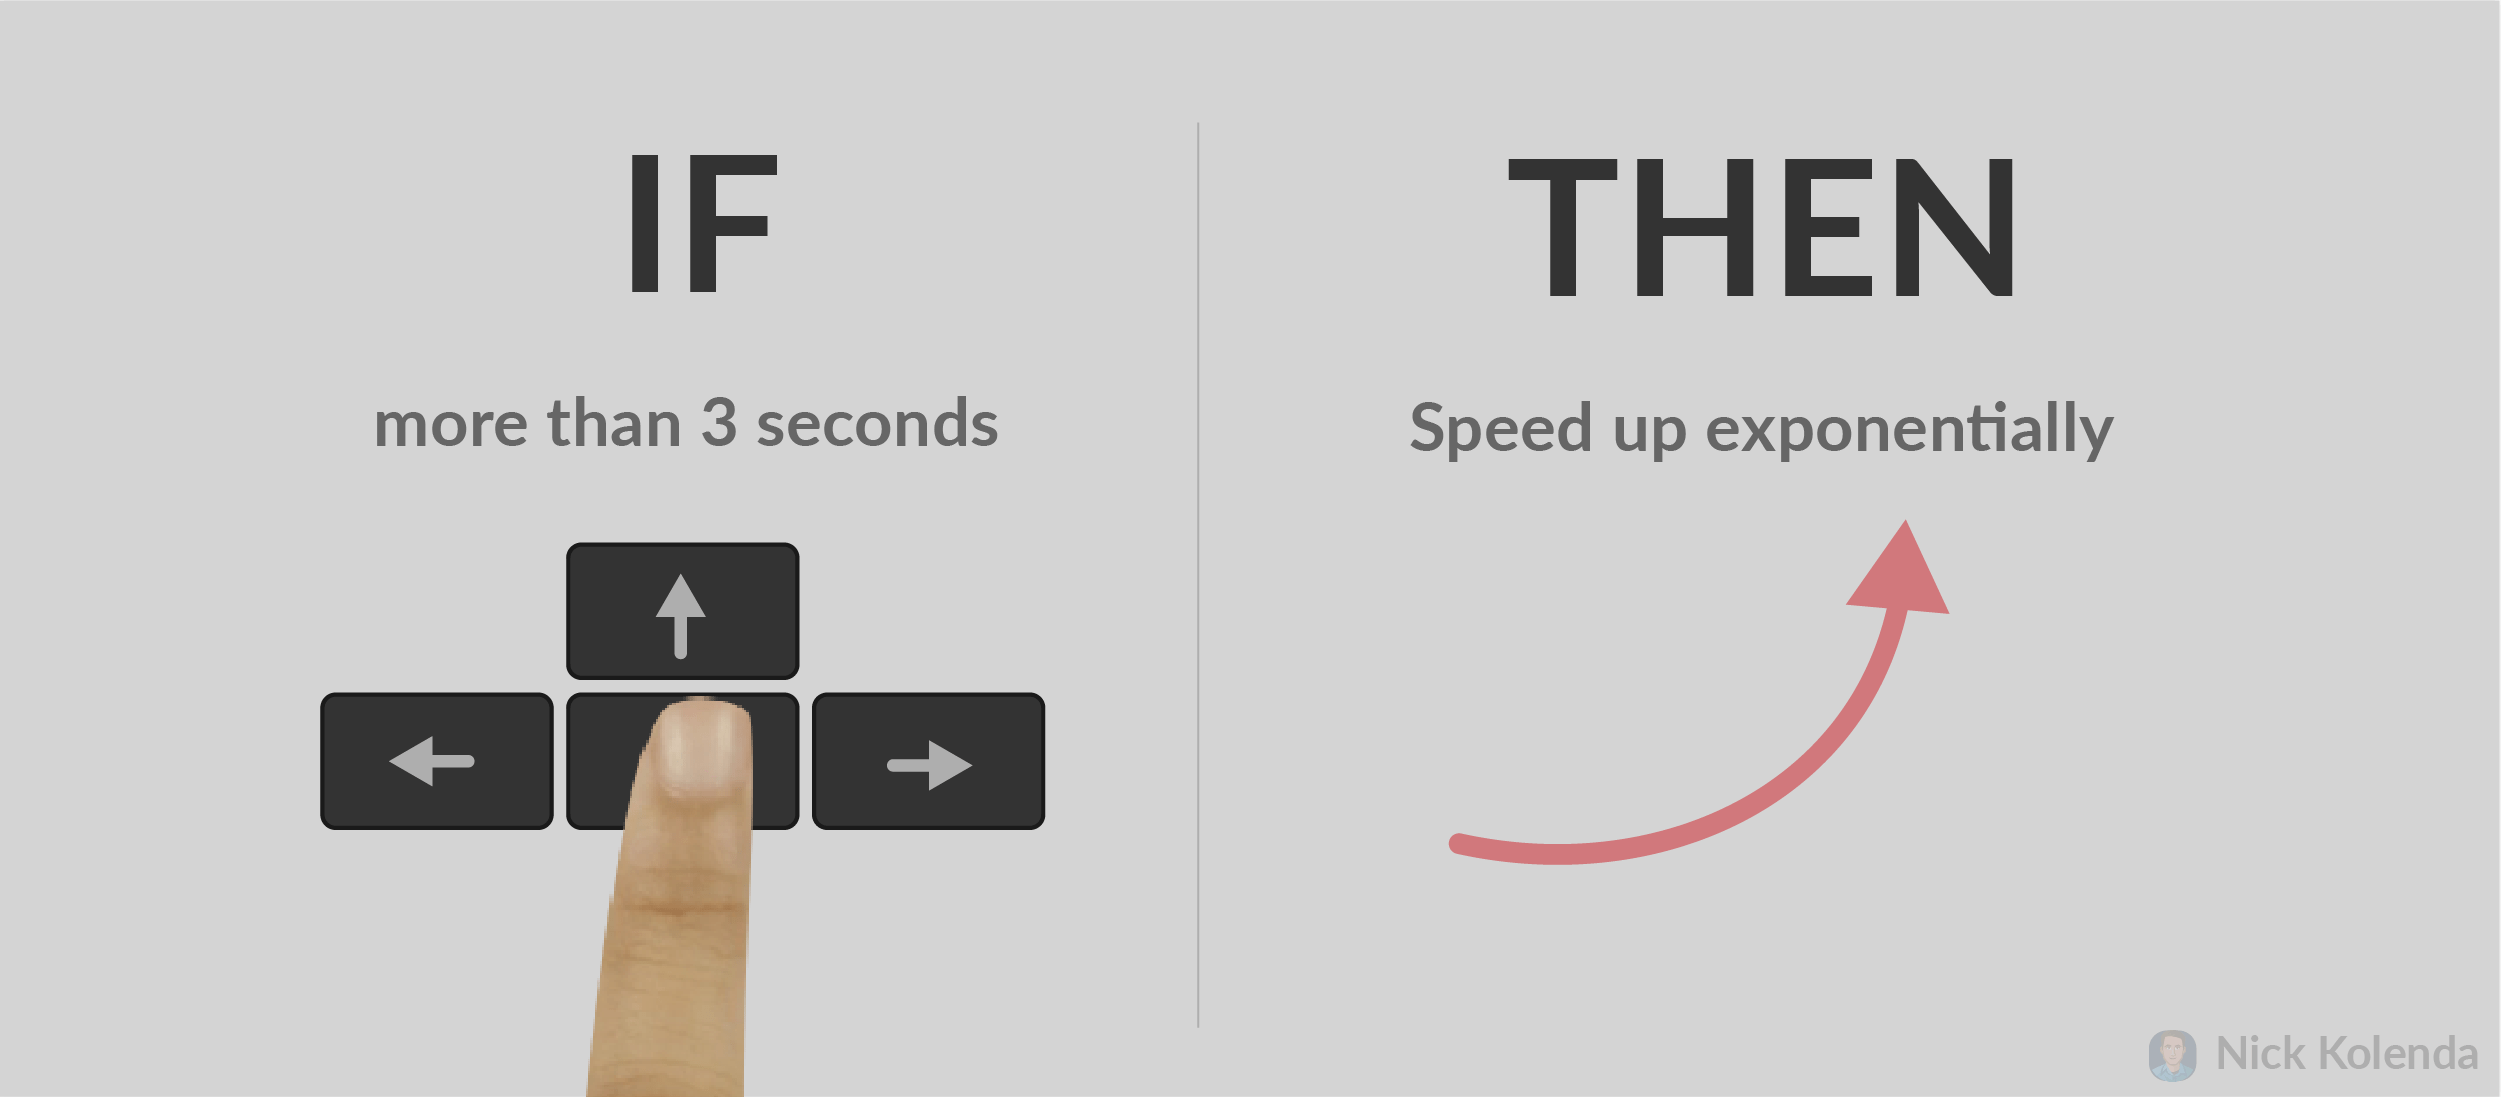 If user holds key for more than 3 seconds, speed up exponentiallly